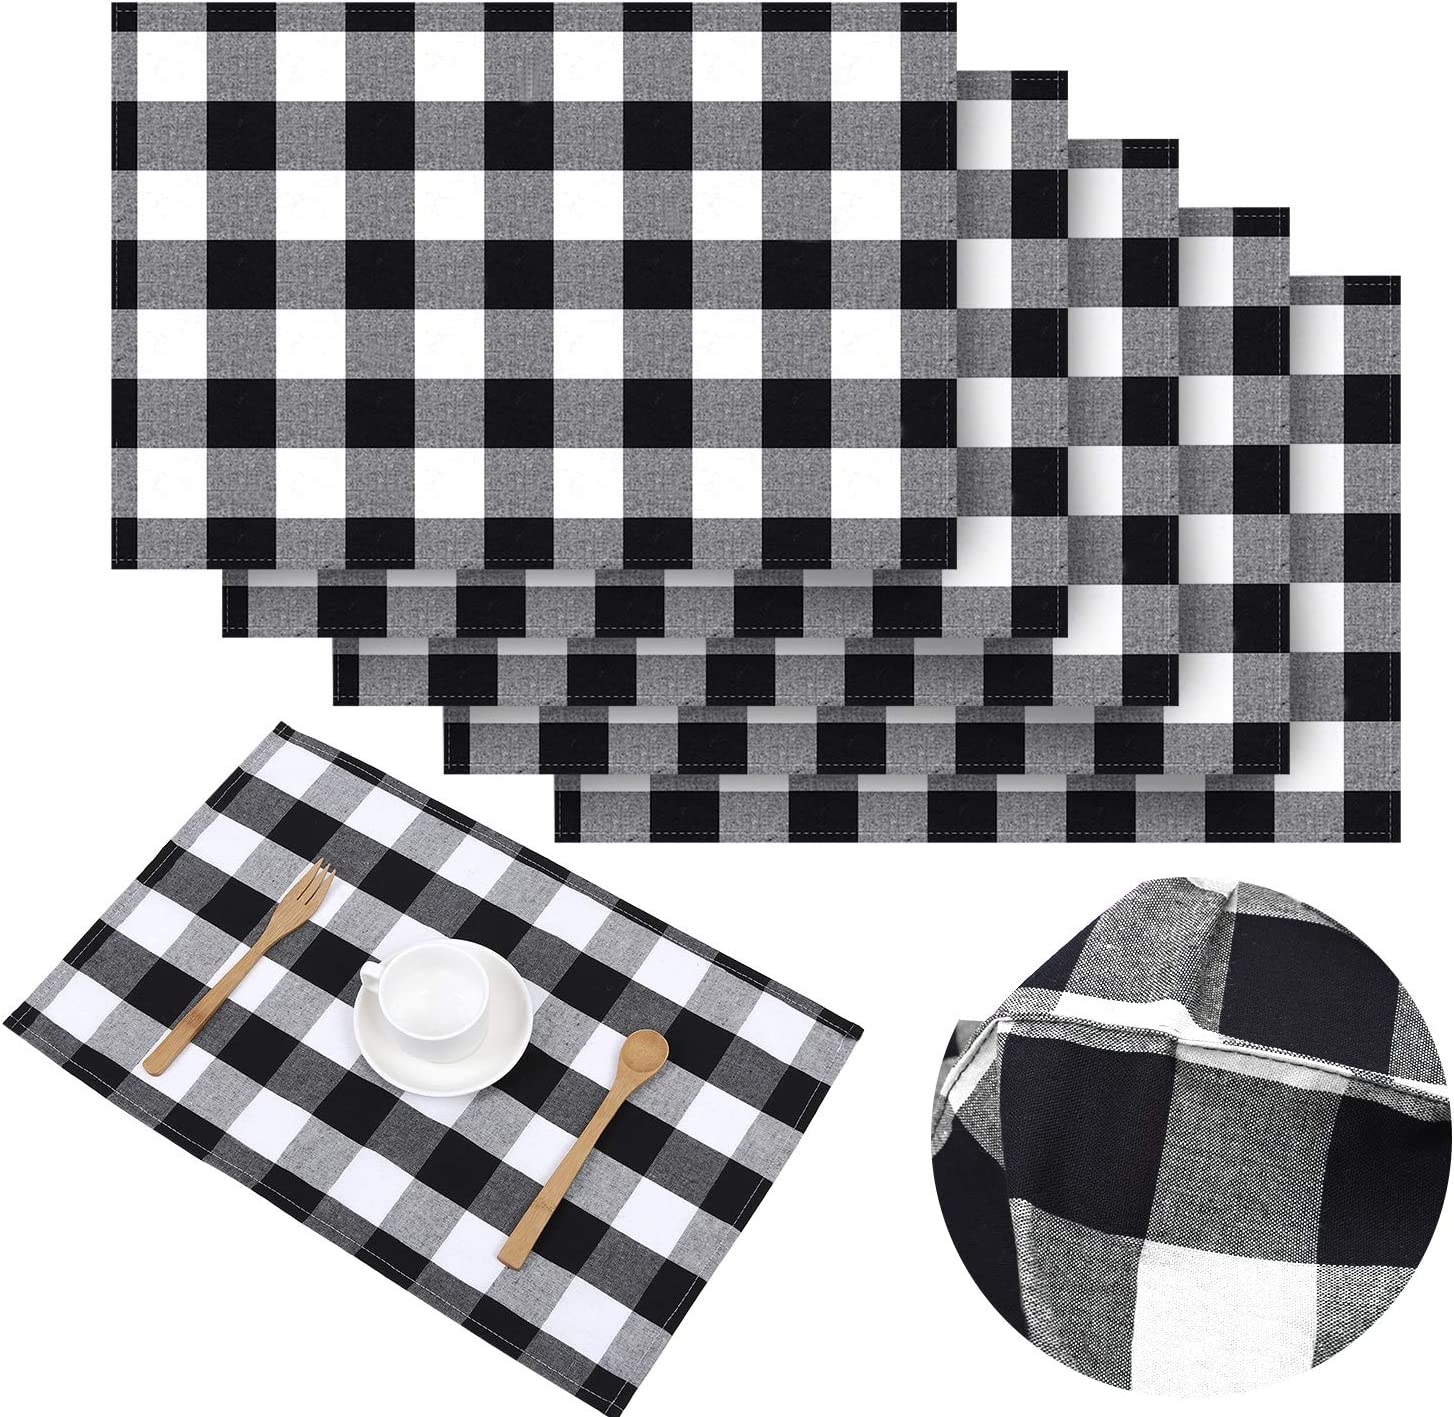 Aneco 6 Pack Buffalo Plaid Placemats Place Mats 13 x 19 Inches Checkered Double Layer Placemats Decorative Kitchen Cotton Table Placemats, Black and White